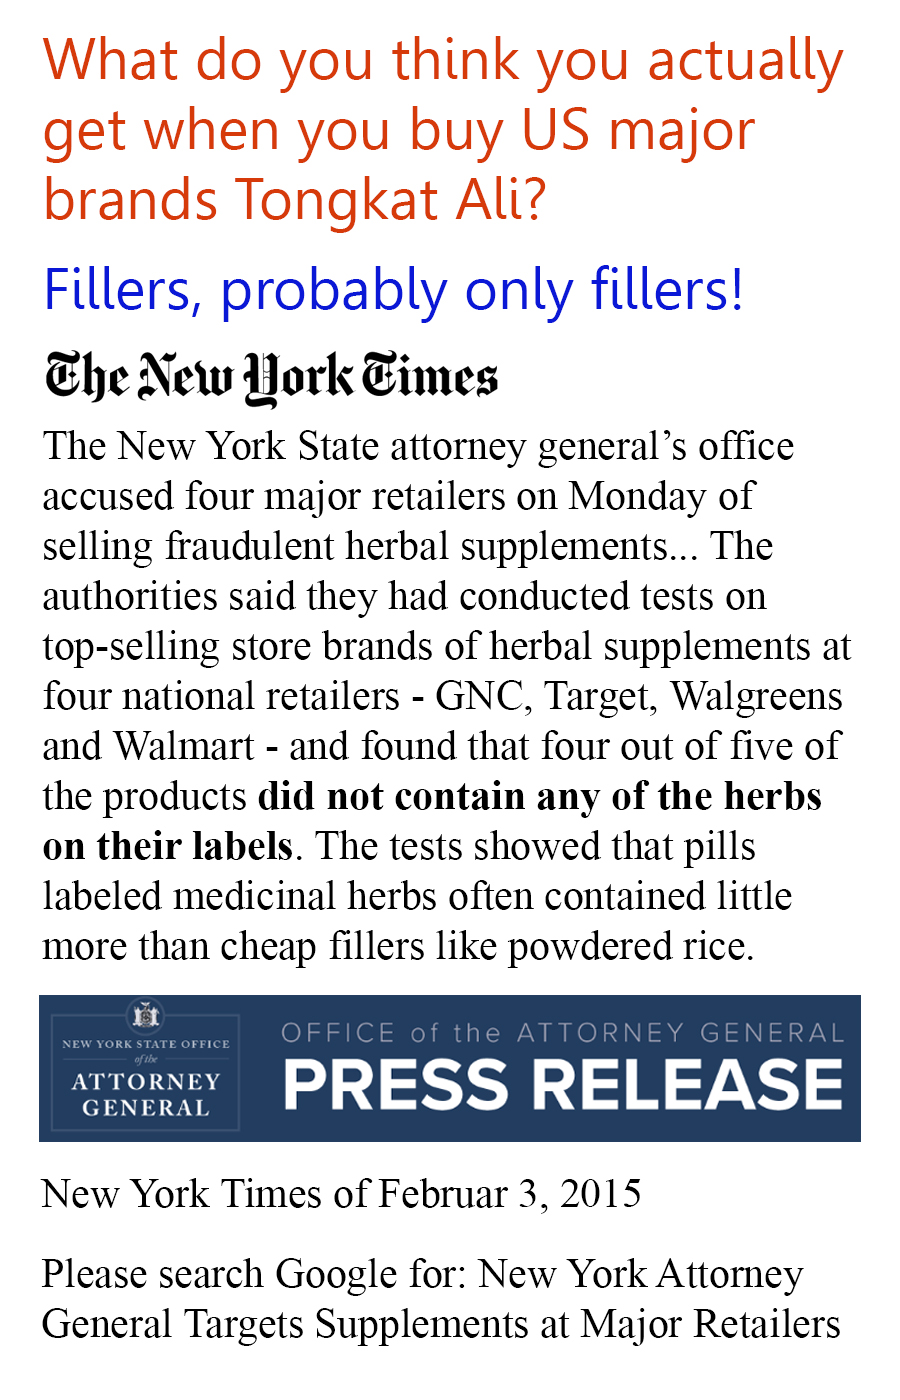 What do you think you actually get when you buy US major brands Tongkat Ali? Fillers, probably only fillers! The New York State attorney generals office accused four major retailers on Monday of selling fraudulent herbal supplements... The authorities said they had conducted tests on top-selling store brands of herbal supplements at four national retailers - GNC, Target, Walgreens and Walmart - and found that four out of five of the products did not contain any of the herbs on their labels. The tests showed that pills labeled medicinal herbs often contained little more than cheap fillers like powdered rice. New York Times of Februar 3, 2015 Please search Google for: New York Attorney General Targets Supplements at Major Retailers